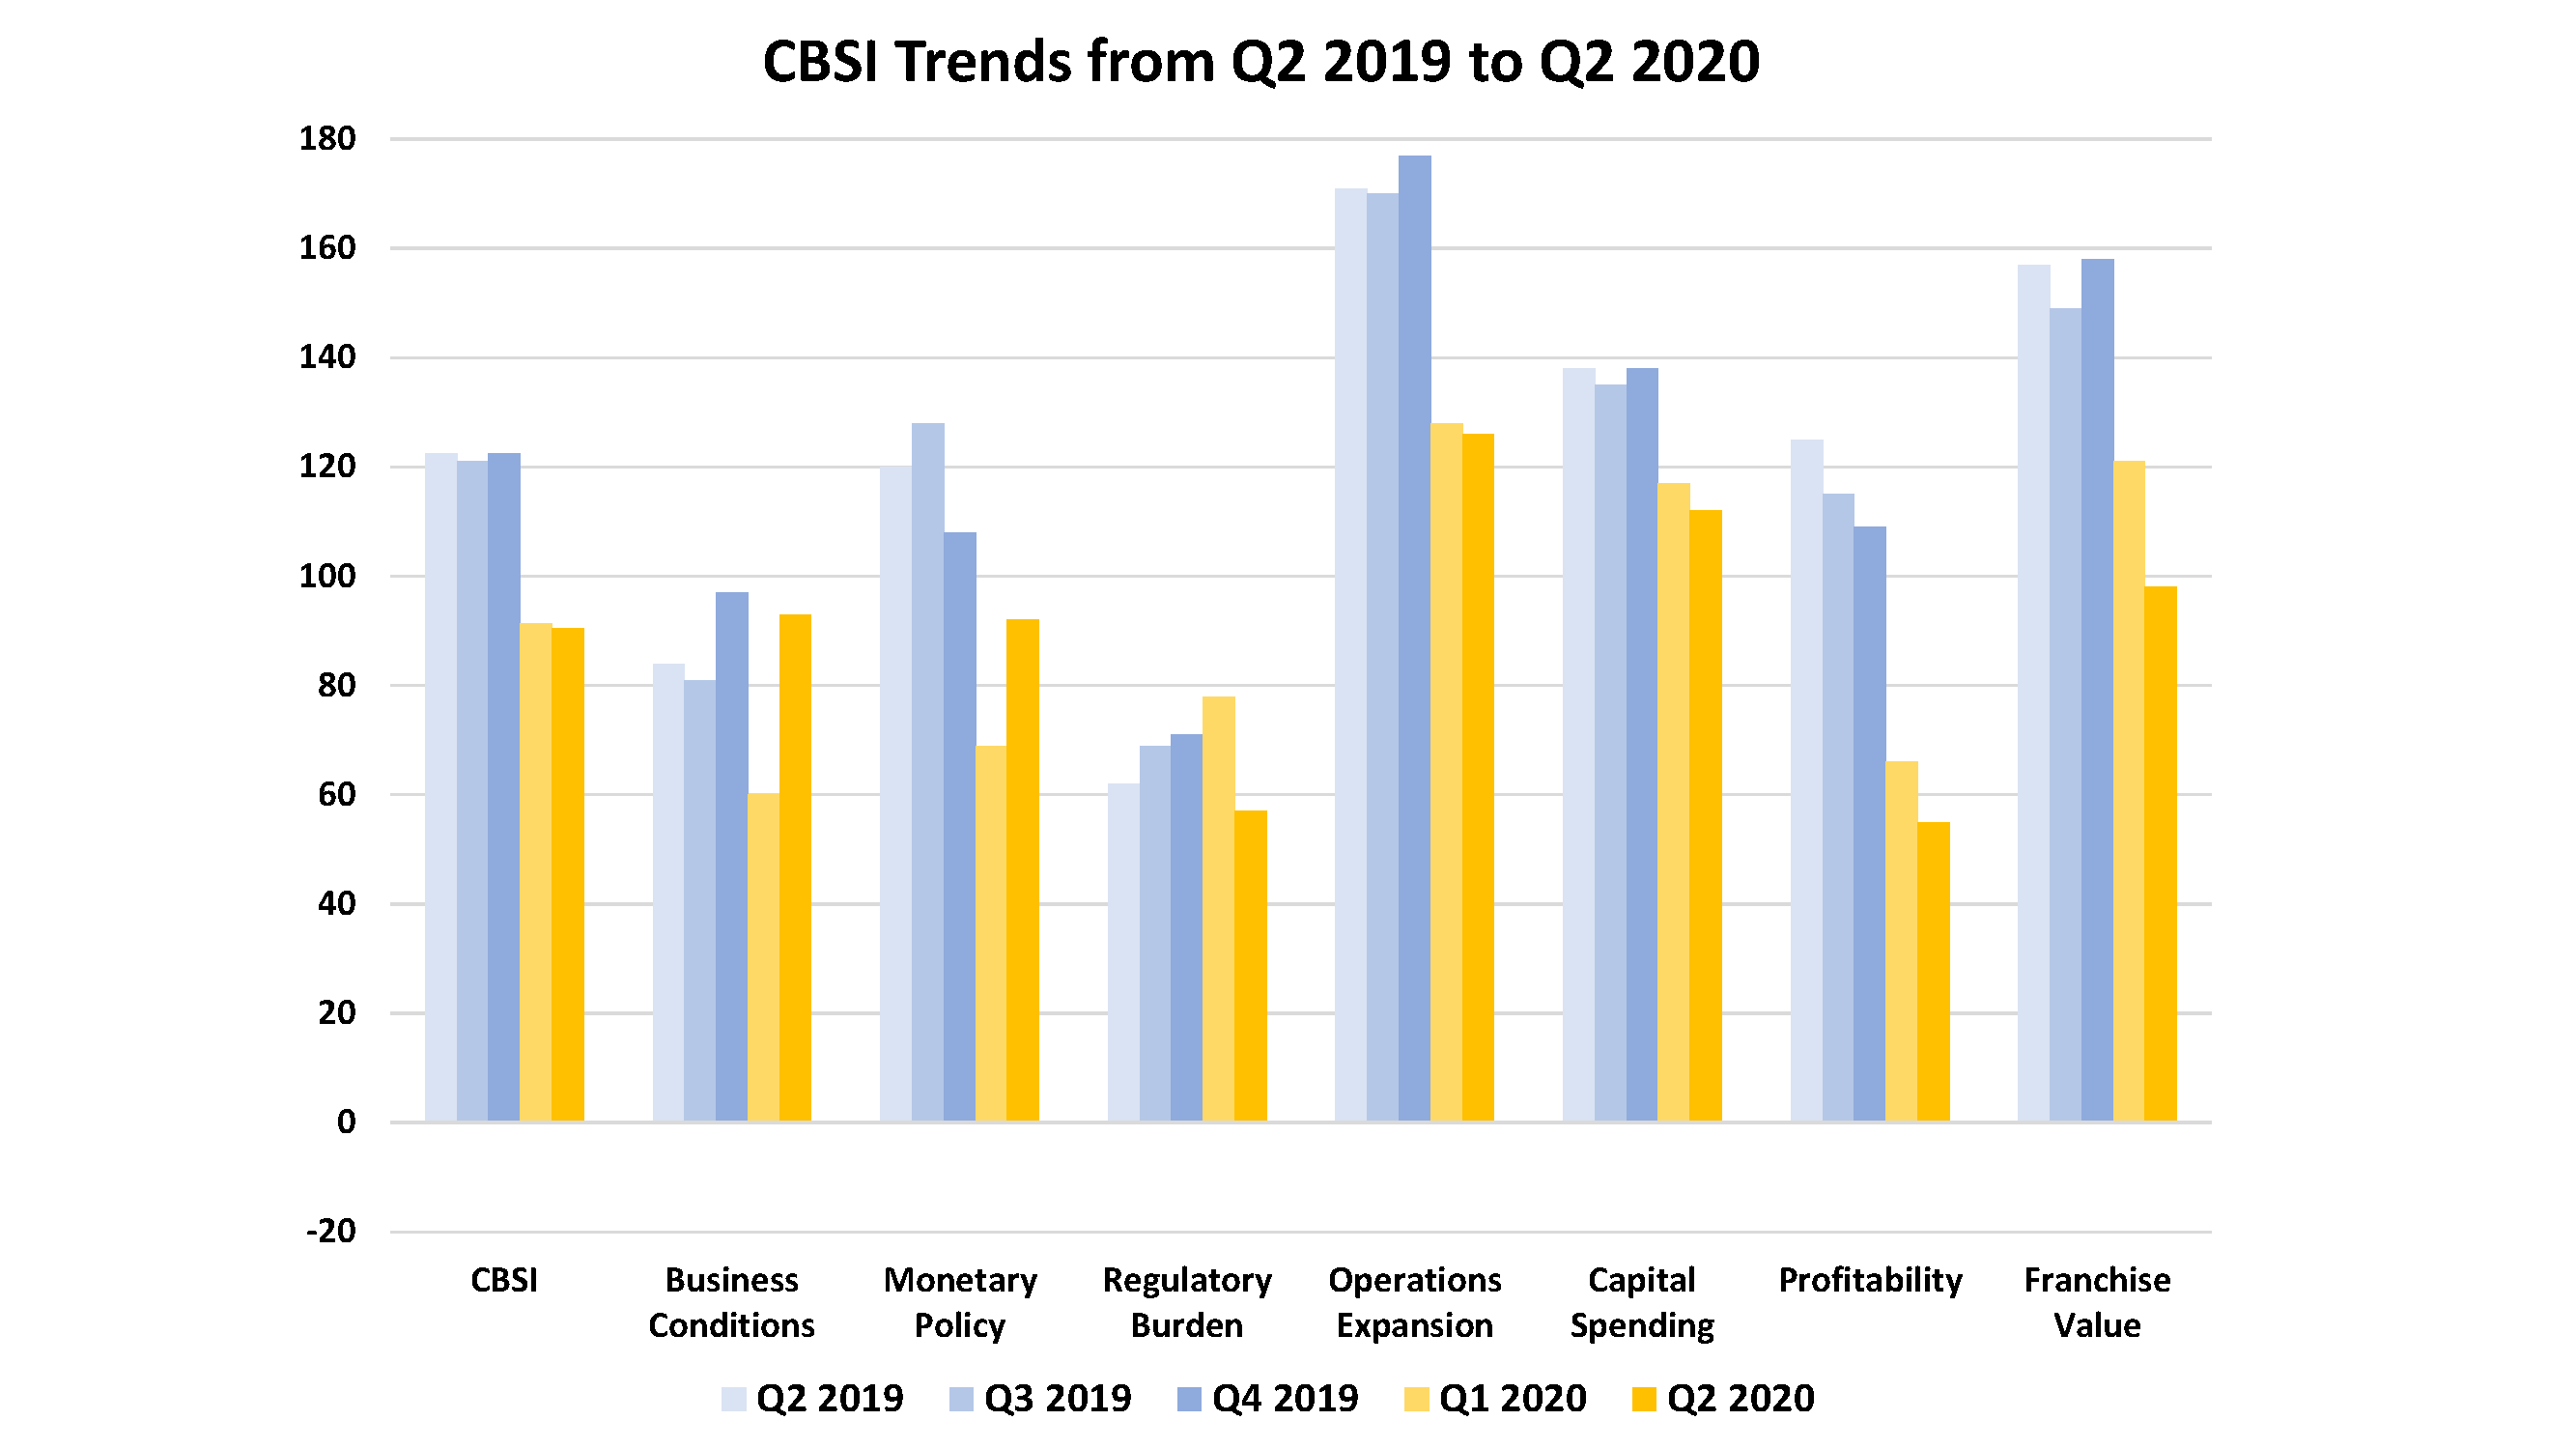 CBSI Trends from Q2 2019 to Q2 2020